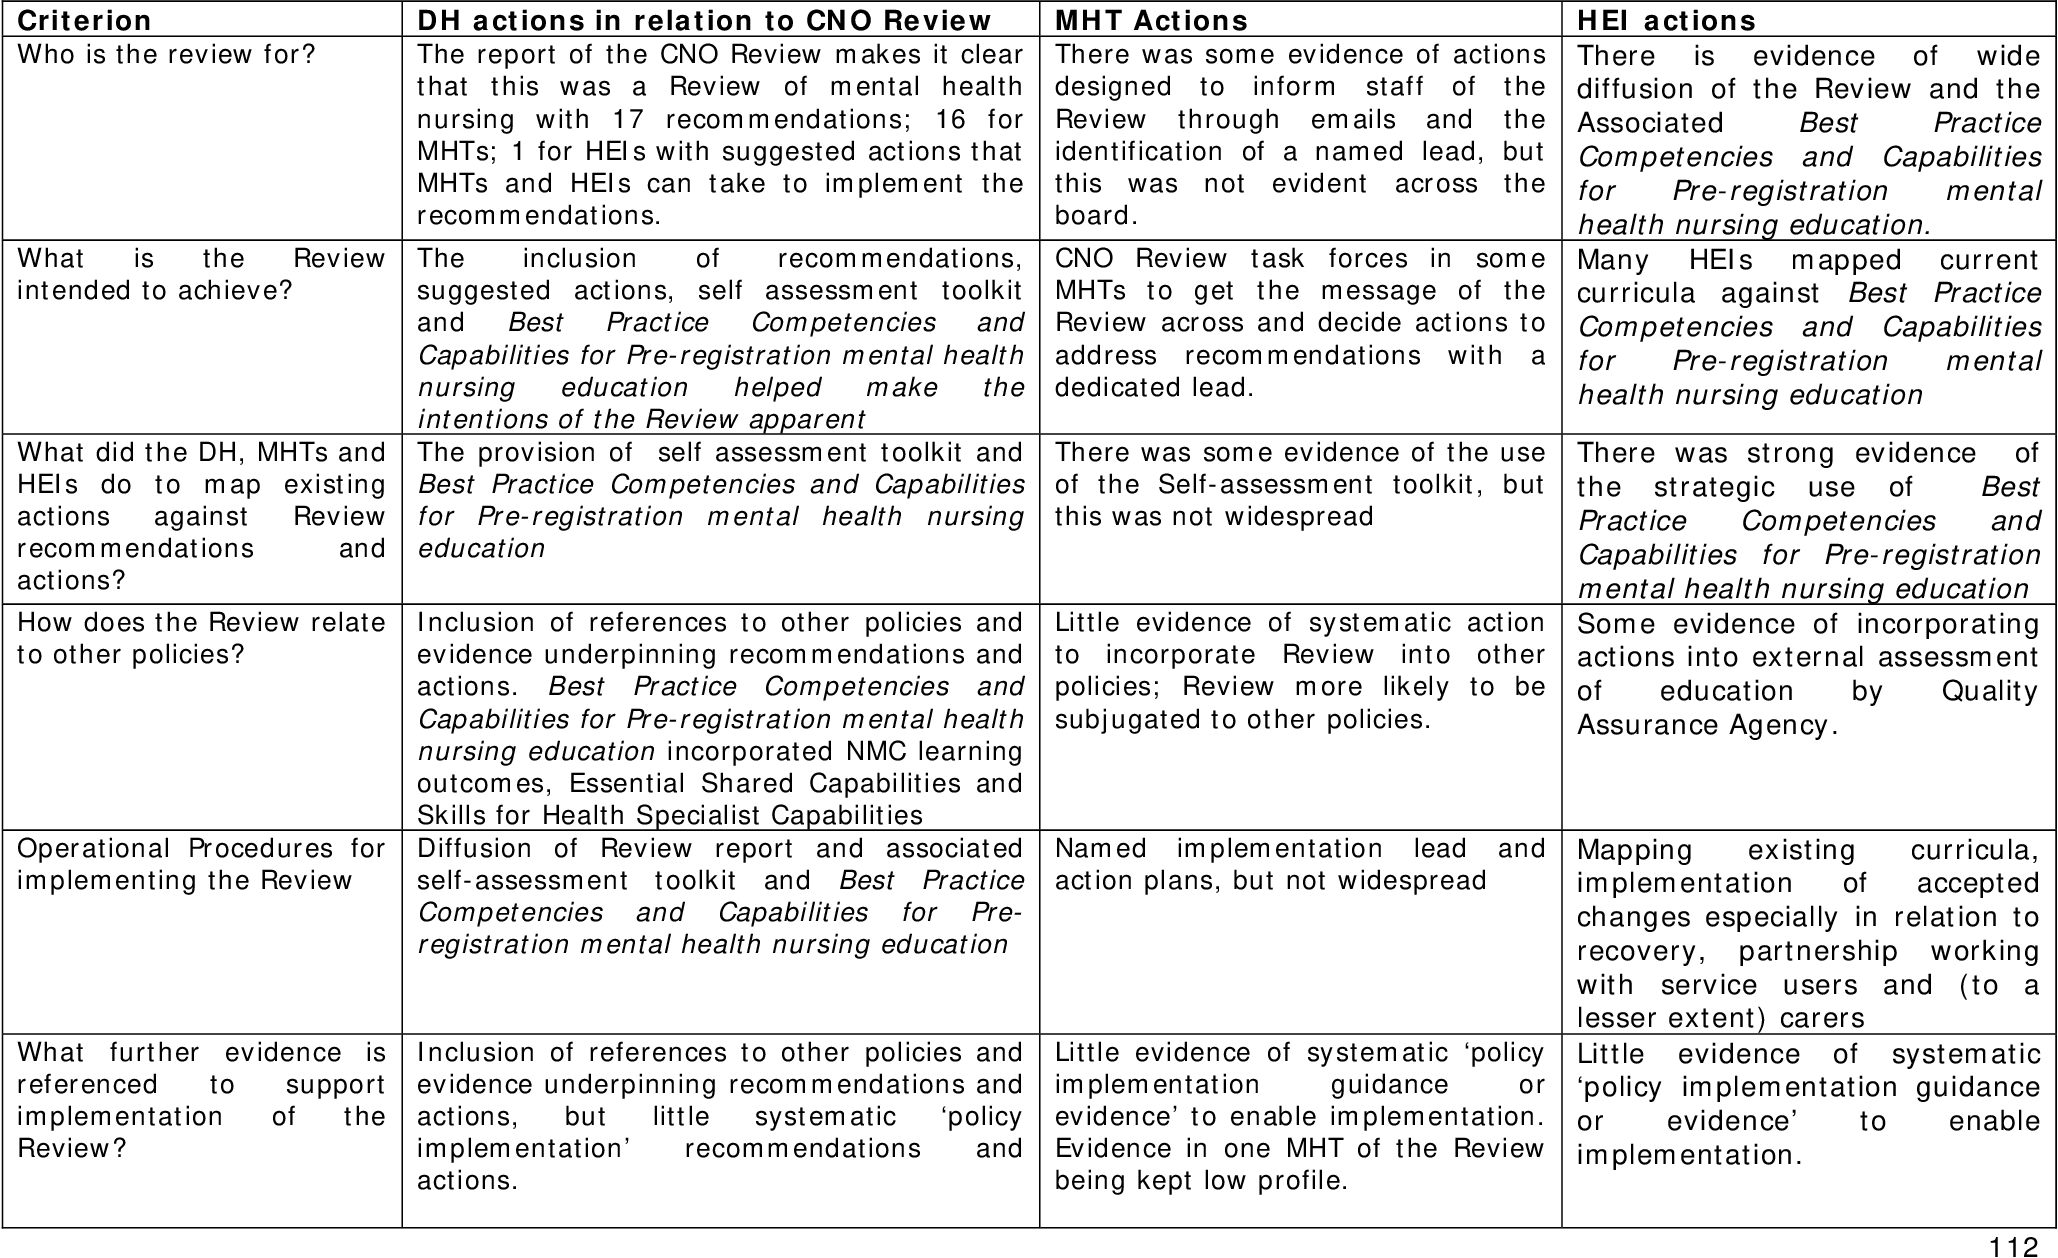 Table 24 from Evaluation of the Chief Nursing Officer's